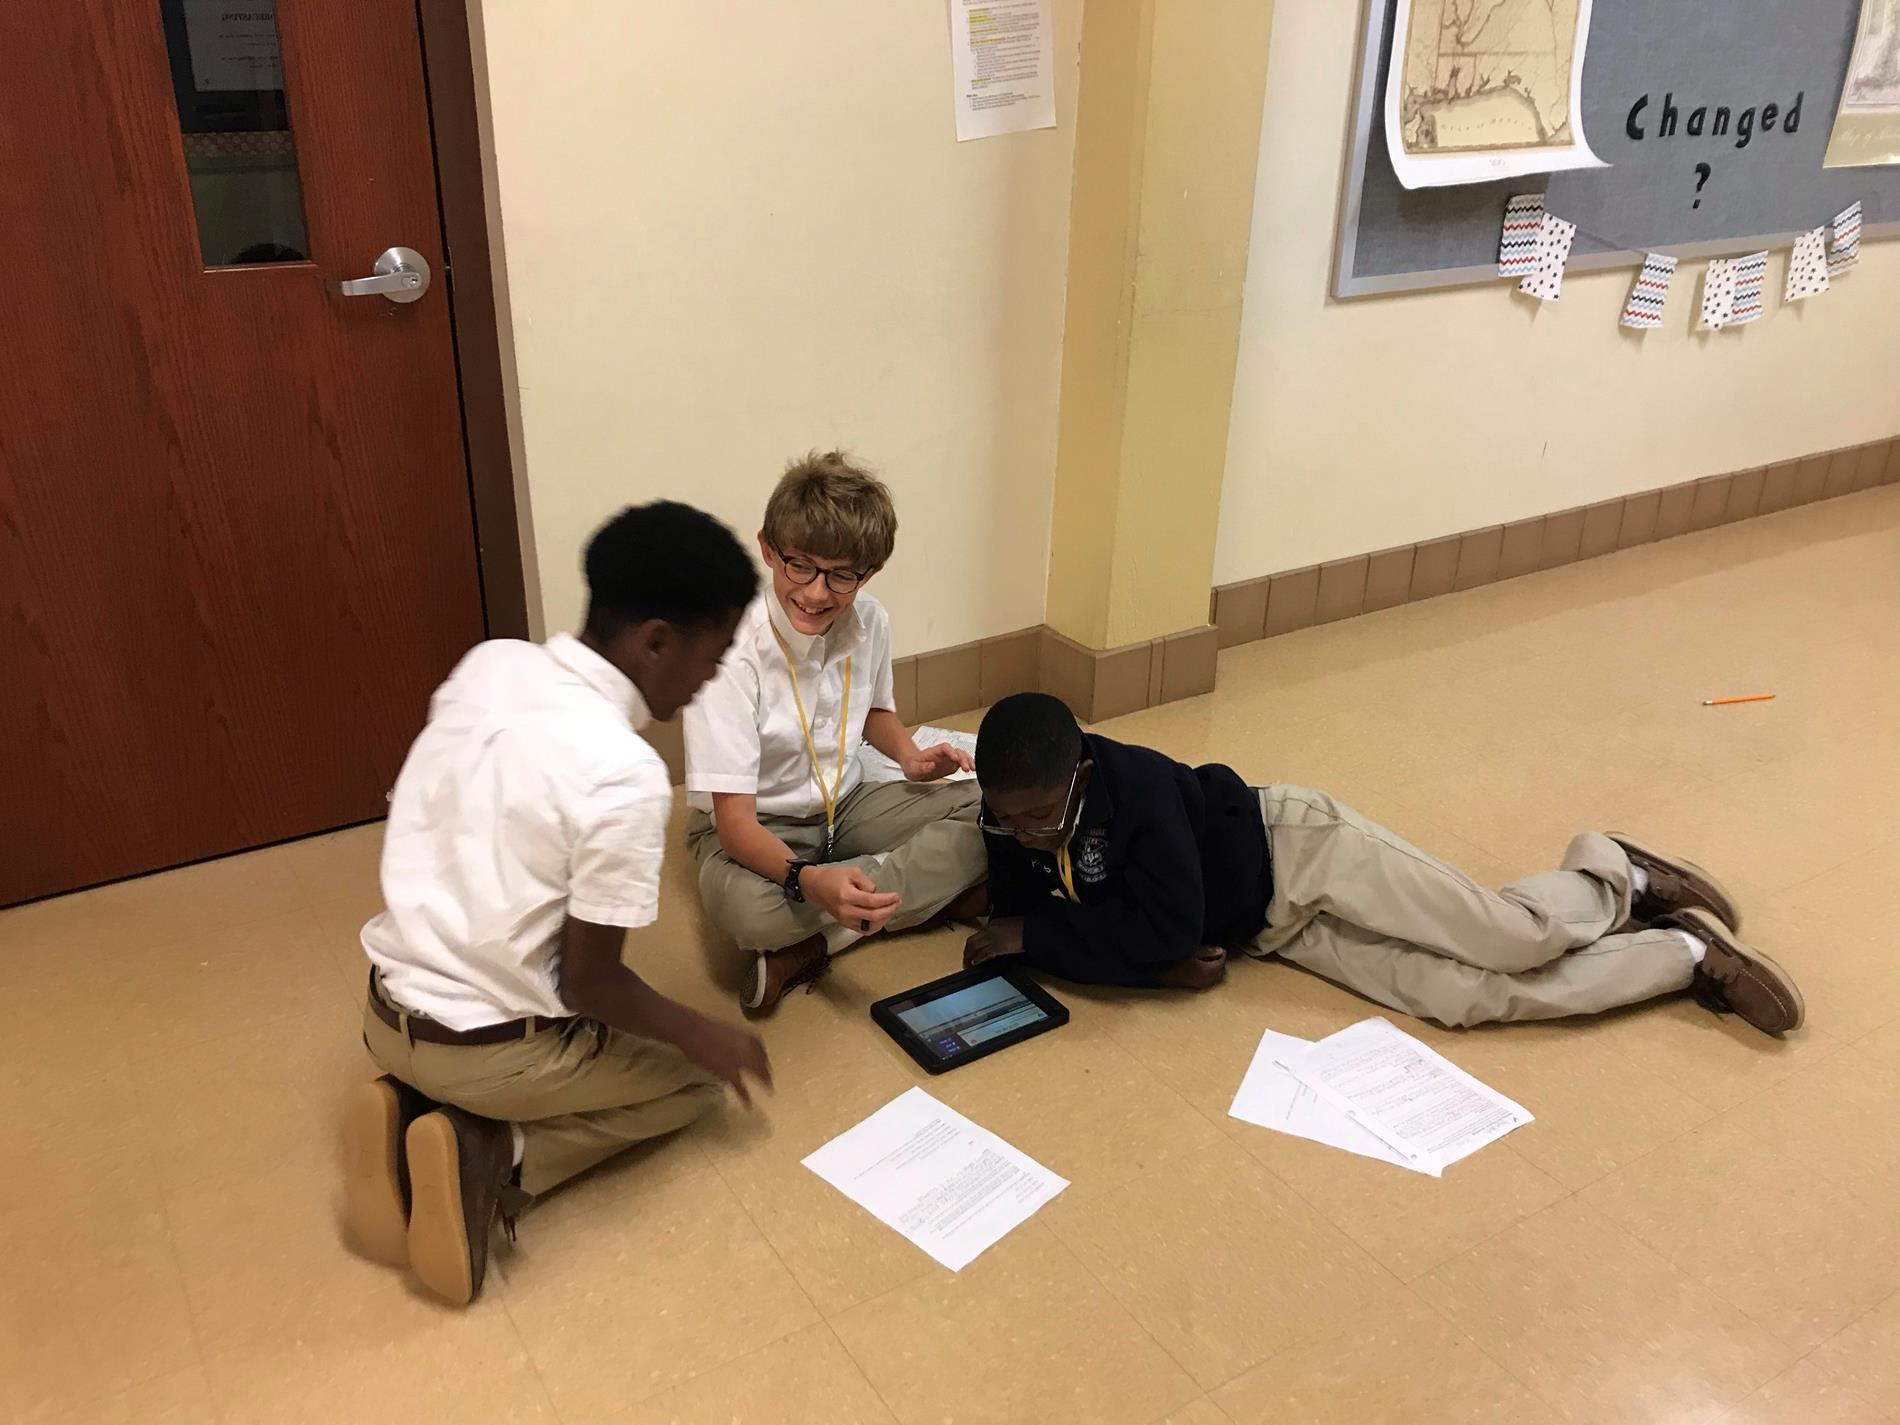 Students recording their podcast about the 1st quarter novel, as a part of their final project.